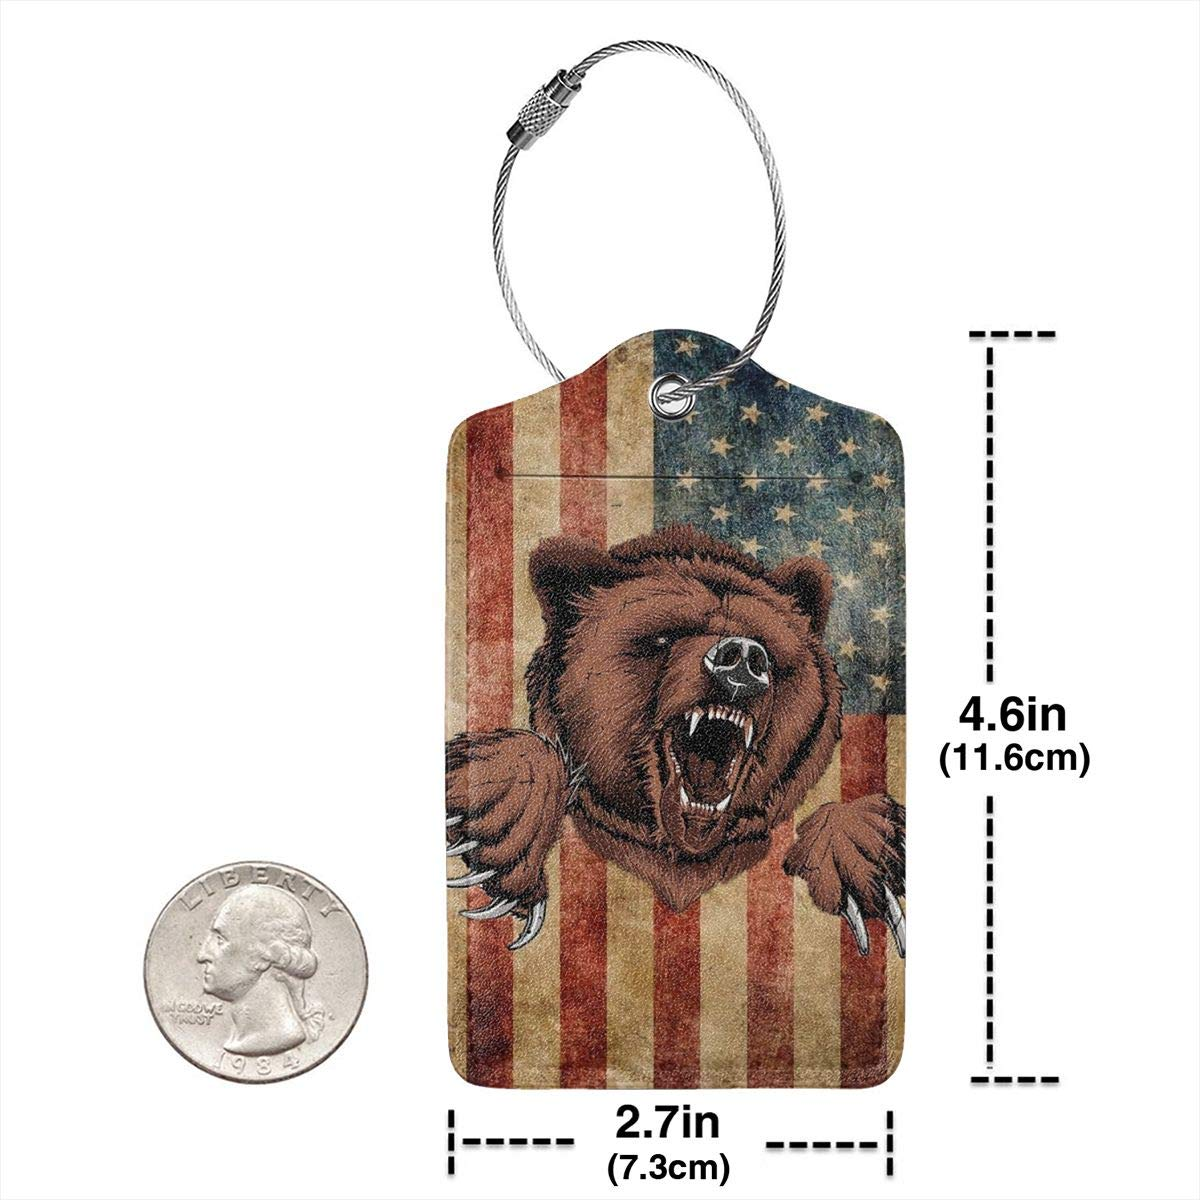 Godzigod Travel Luggage Tags PU Leather Bag Tags Suitcase Baggage Label Handbag Tag with Full Back Privacy Cover Steel Loops California Grizzly Bear American Flag